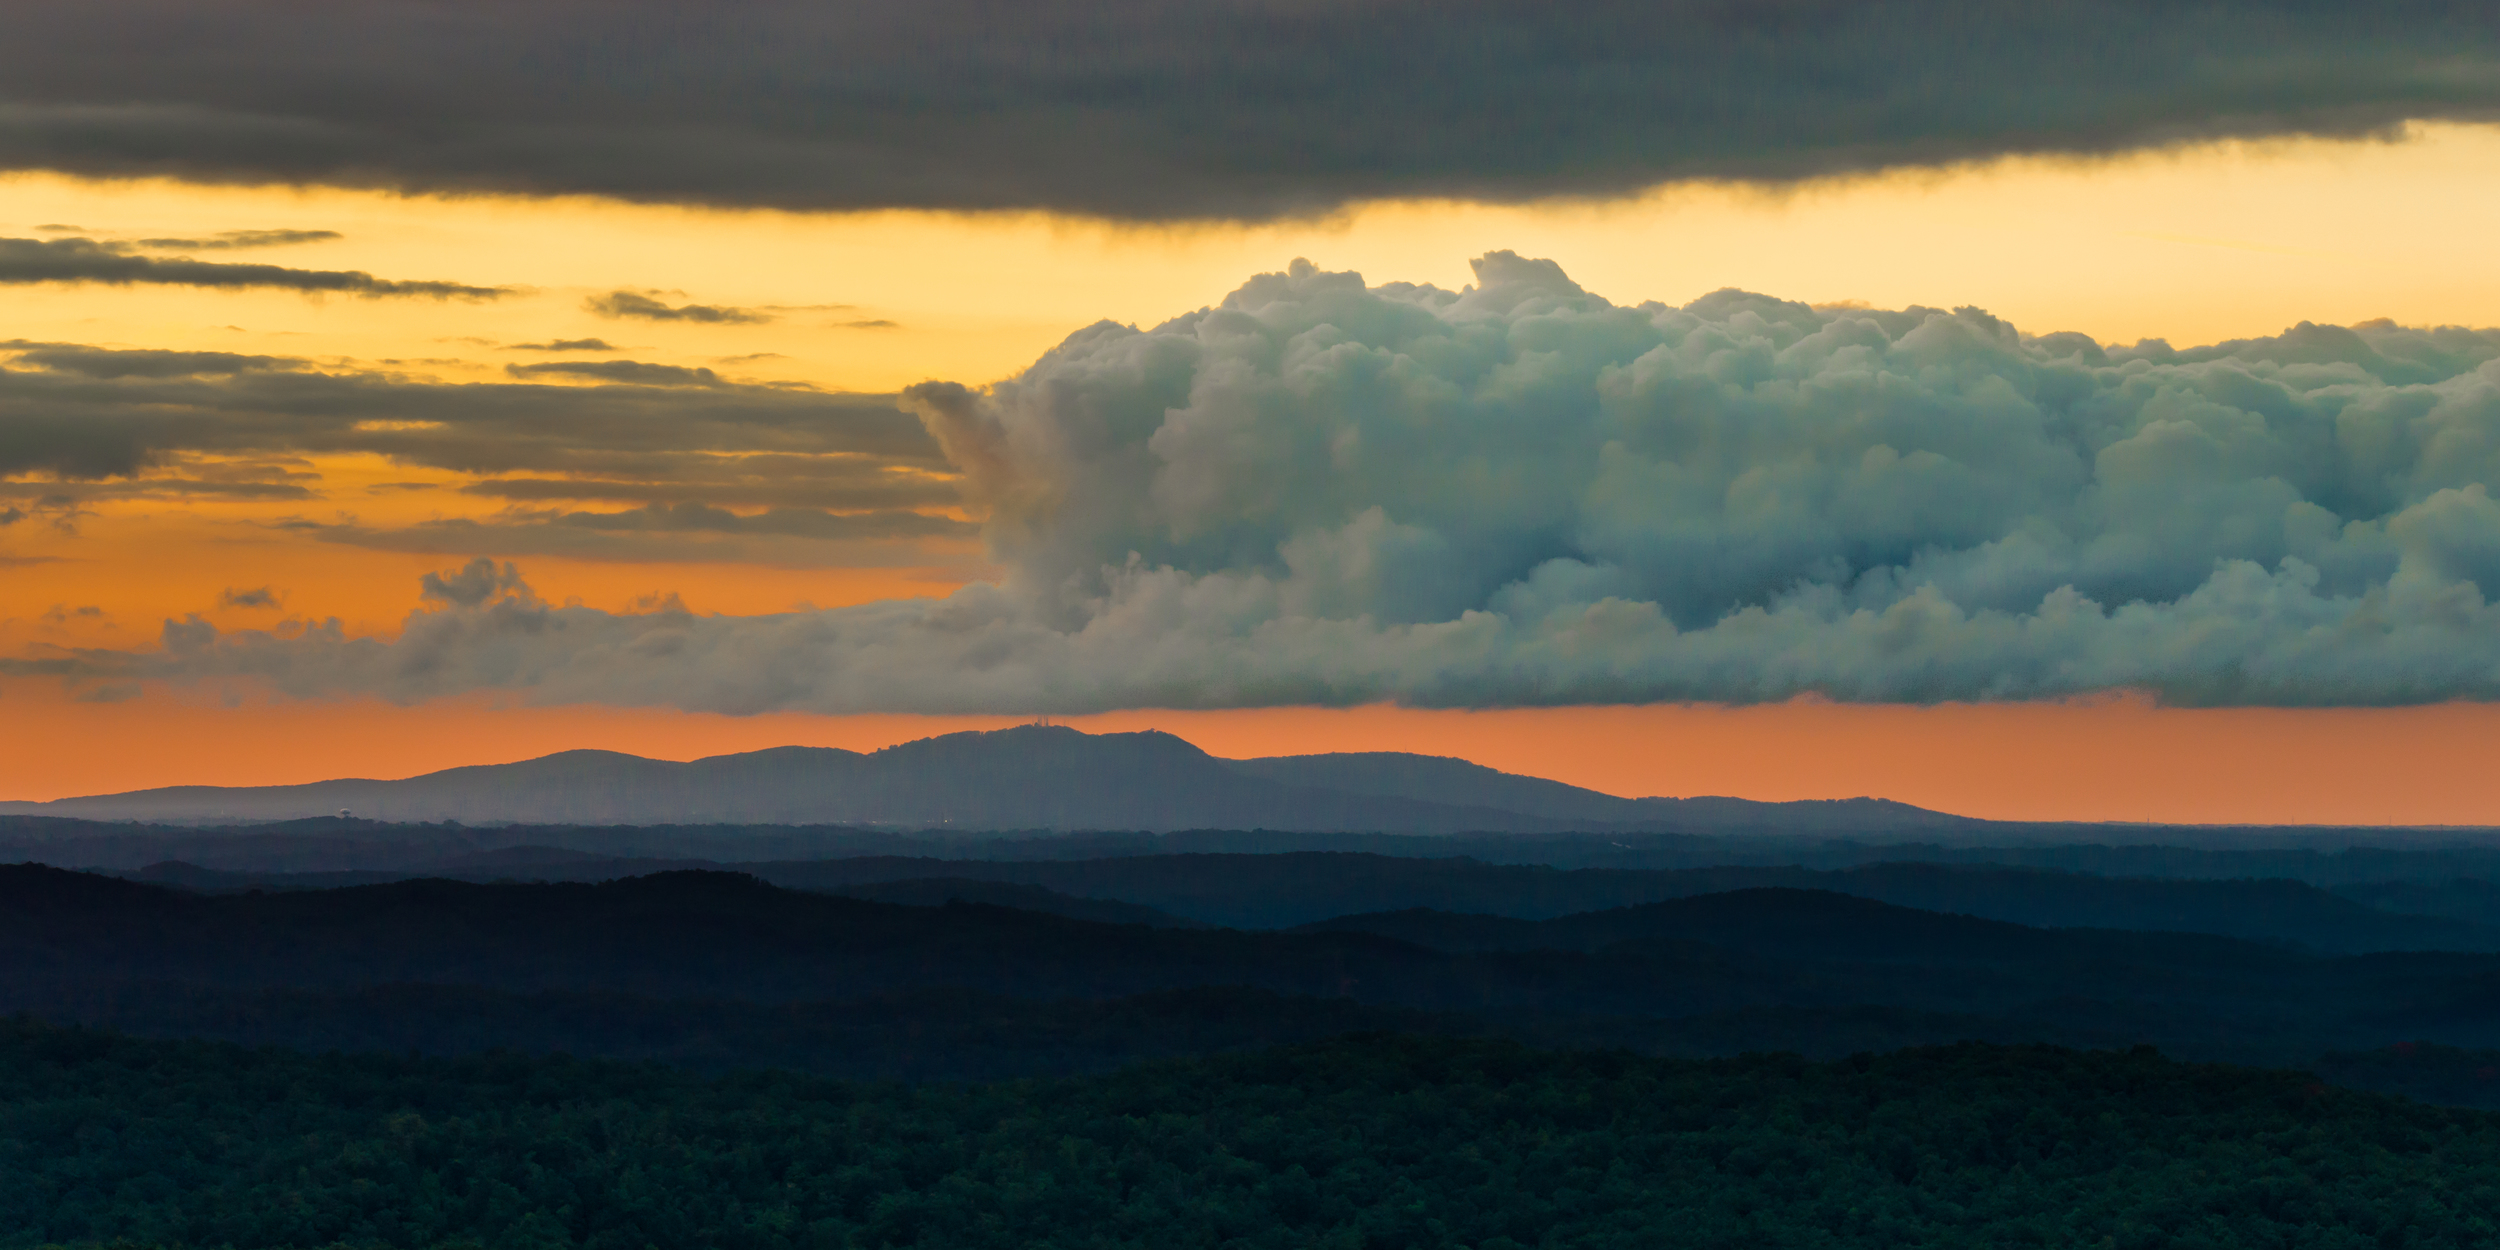 blue mountains with yellow and orange sky